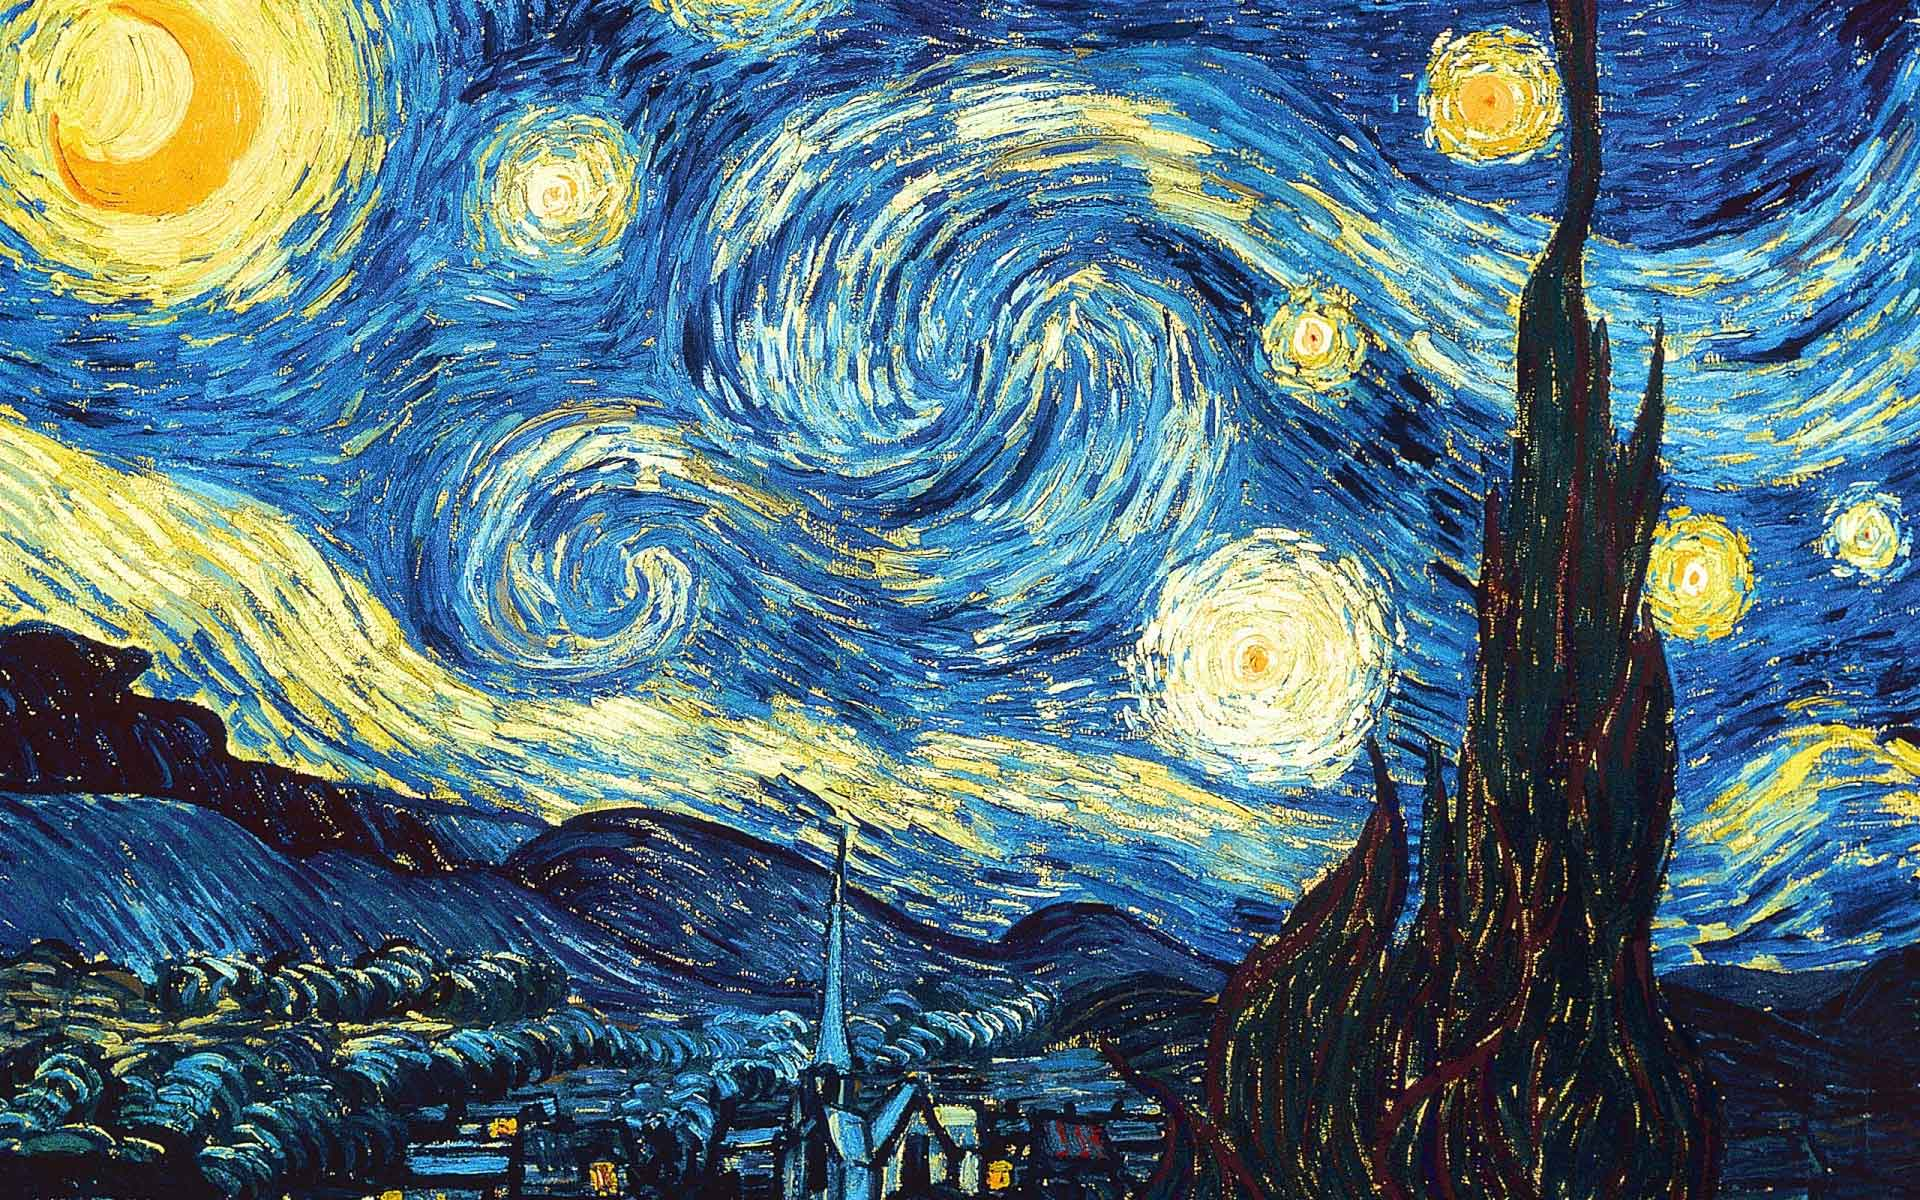 Vincent van Gogh. The Starry night